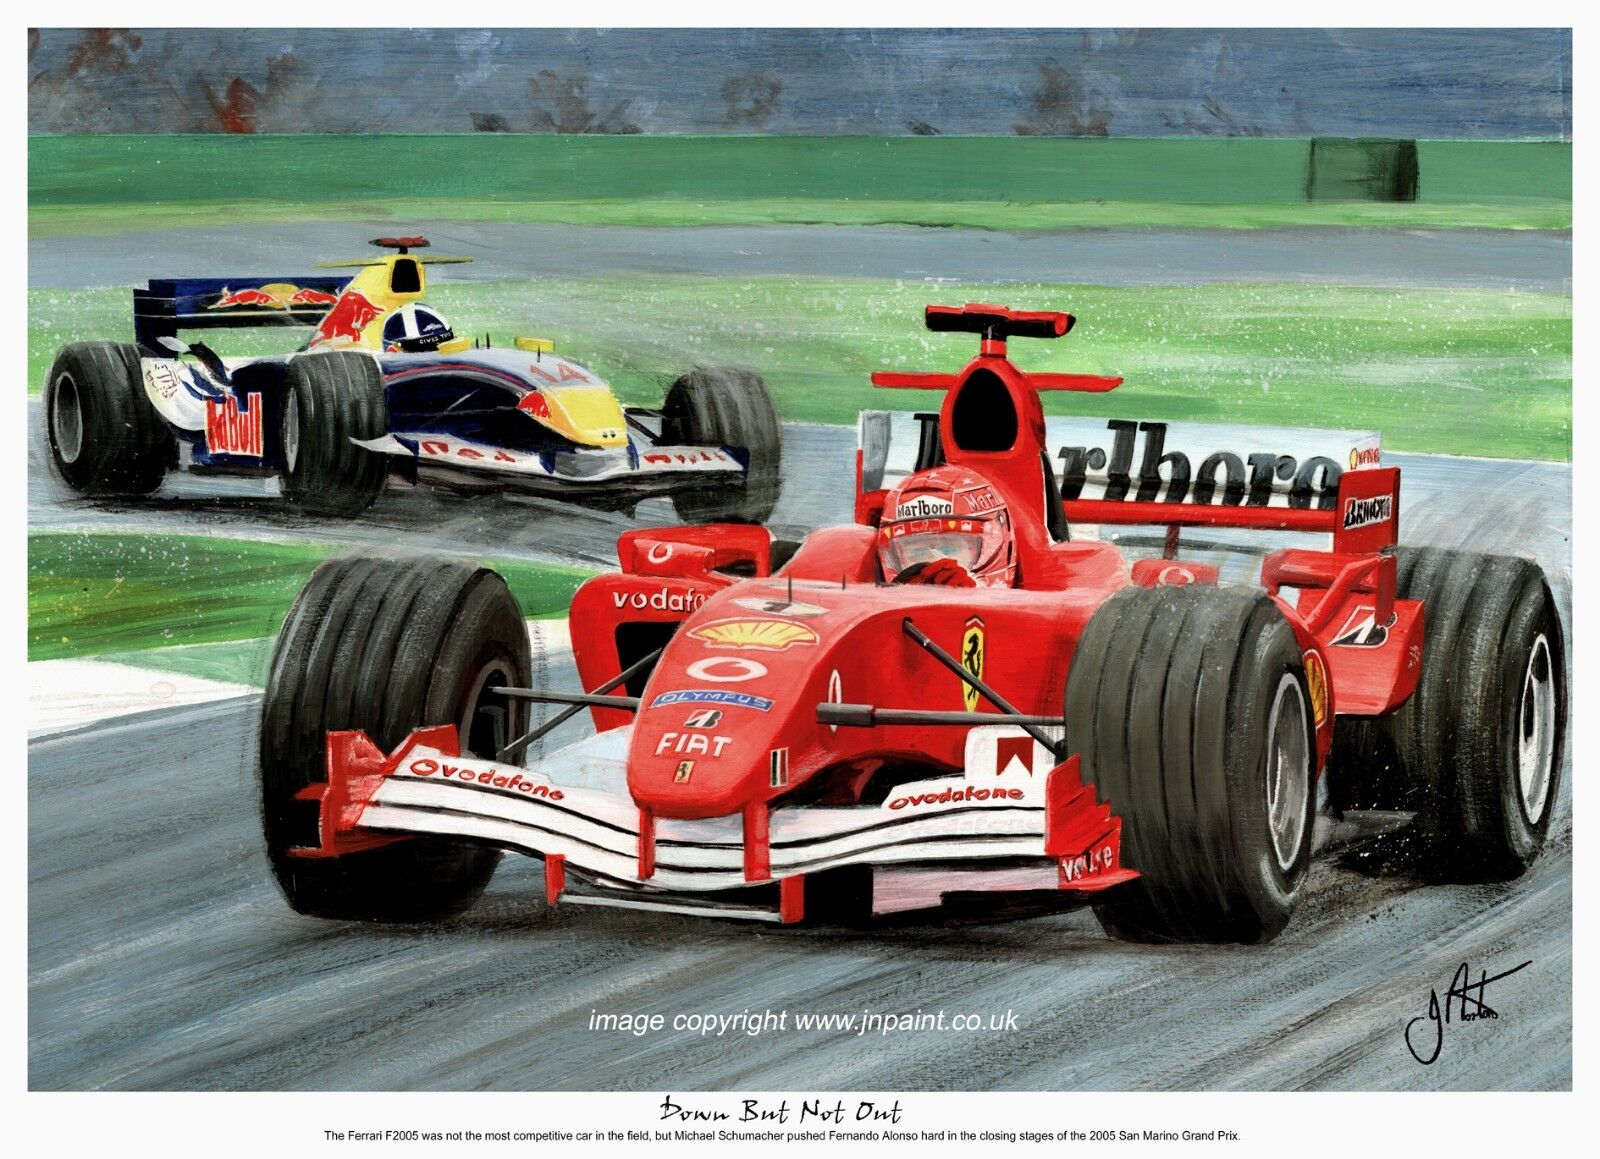 WOW!!!FORMULA 1 F1 Ferrari F2001 Race Car 3D View Michael Schumacher